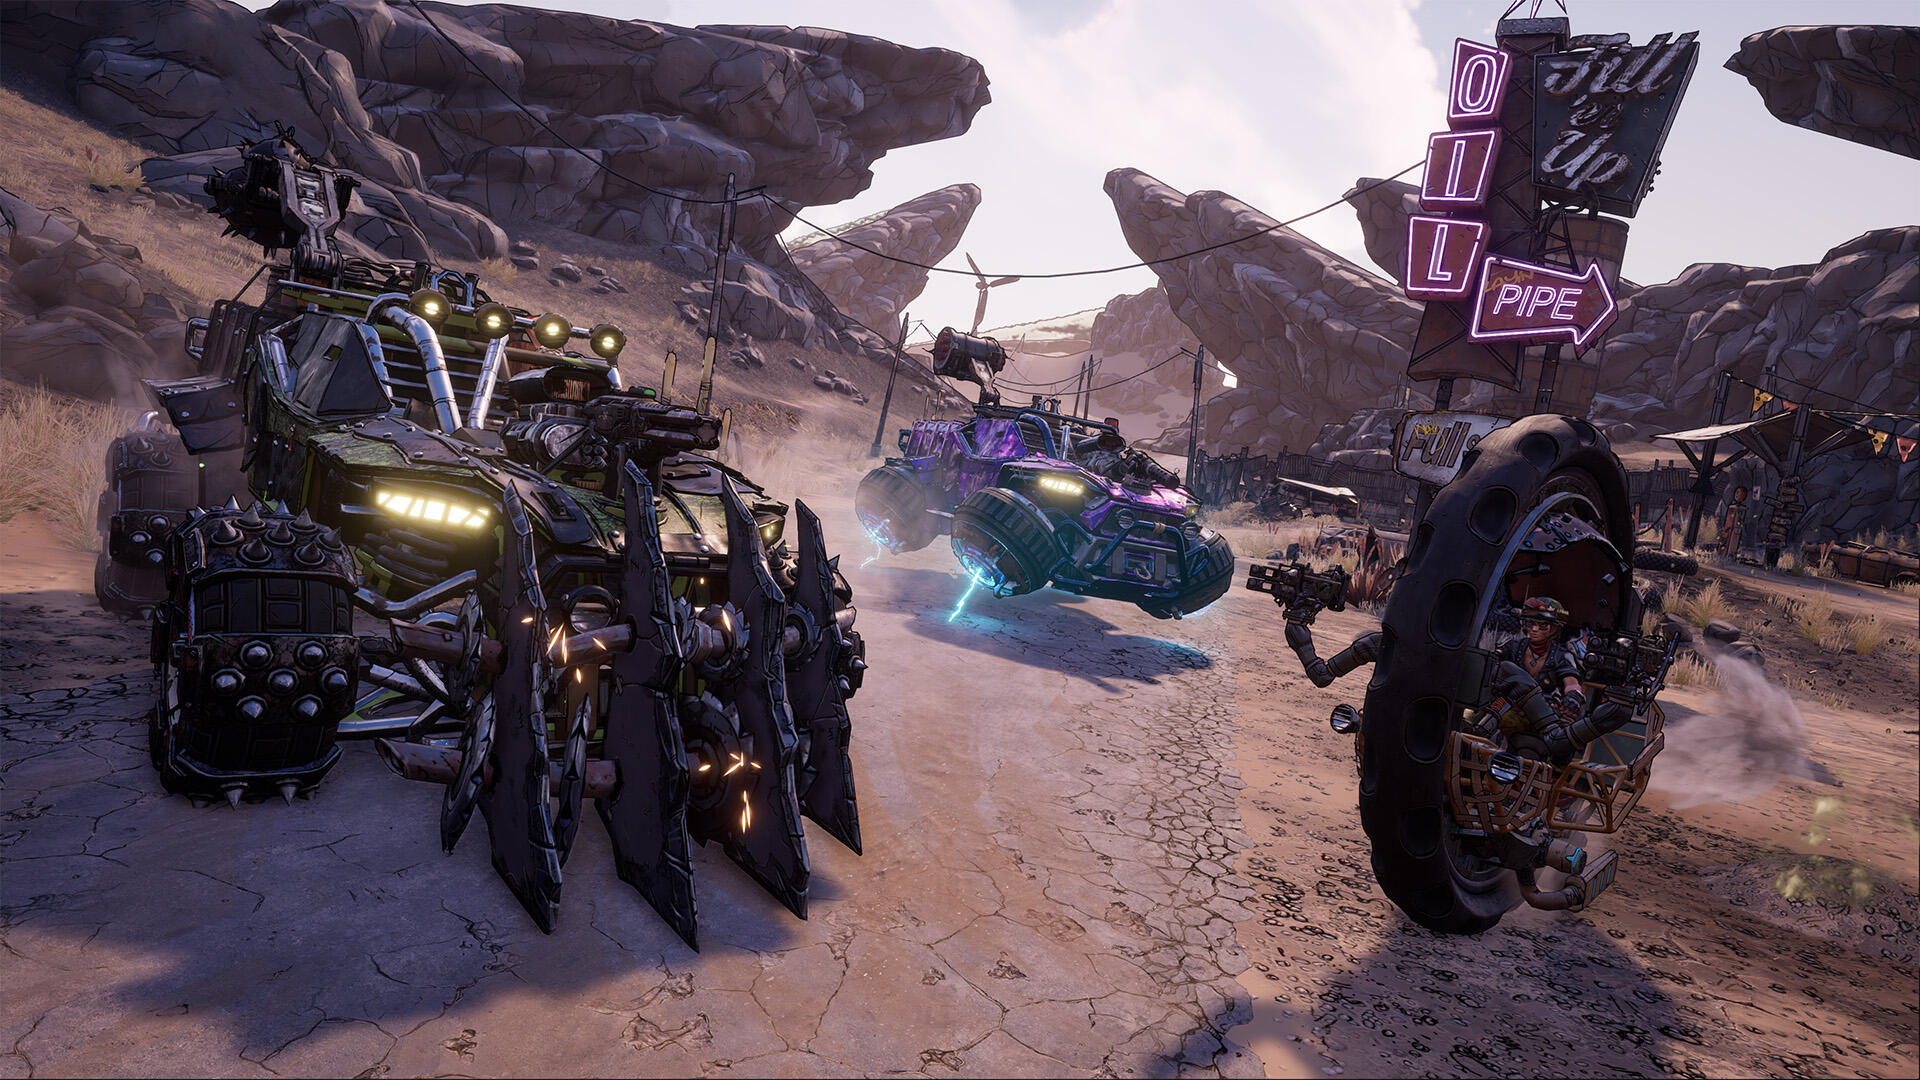 Borderlands 3 Vehicles: How to Get Your First Vehicle, Vehicles Upgrade Locations